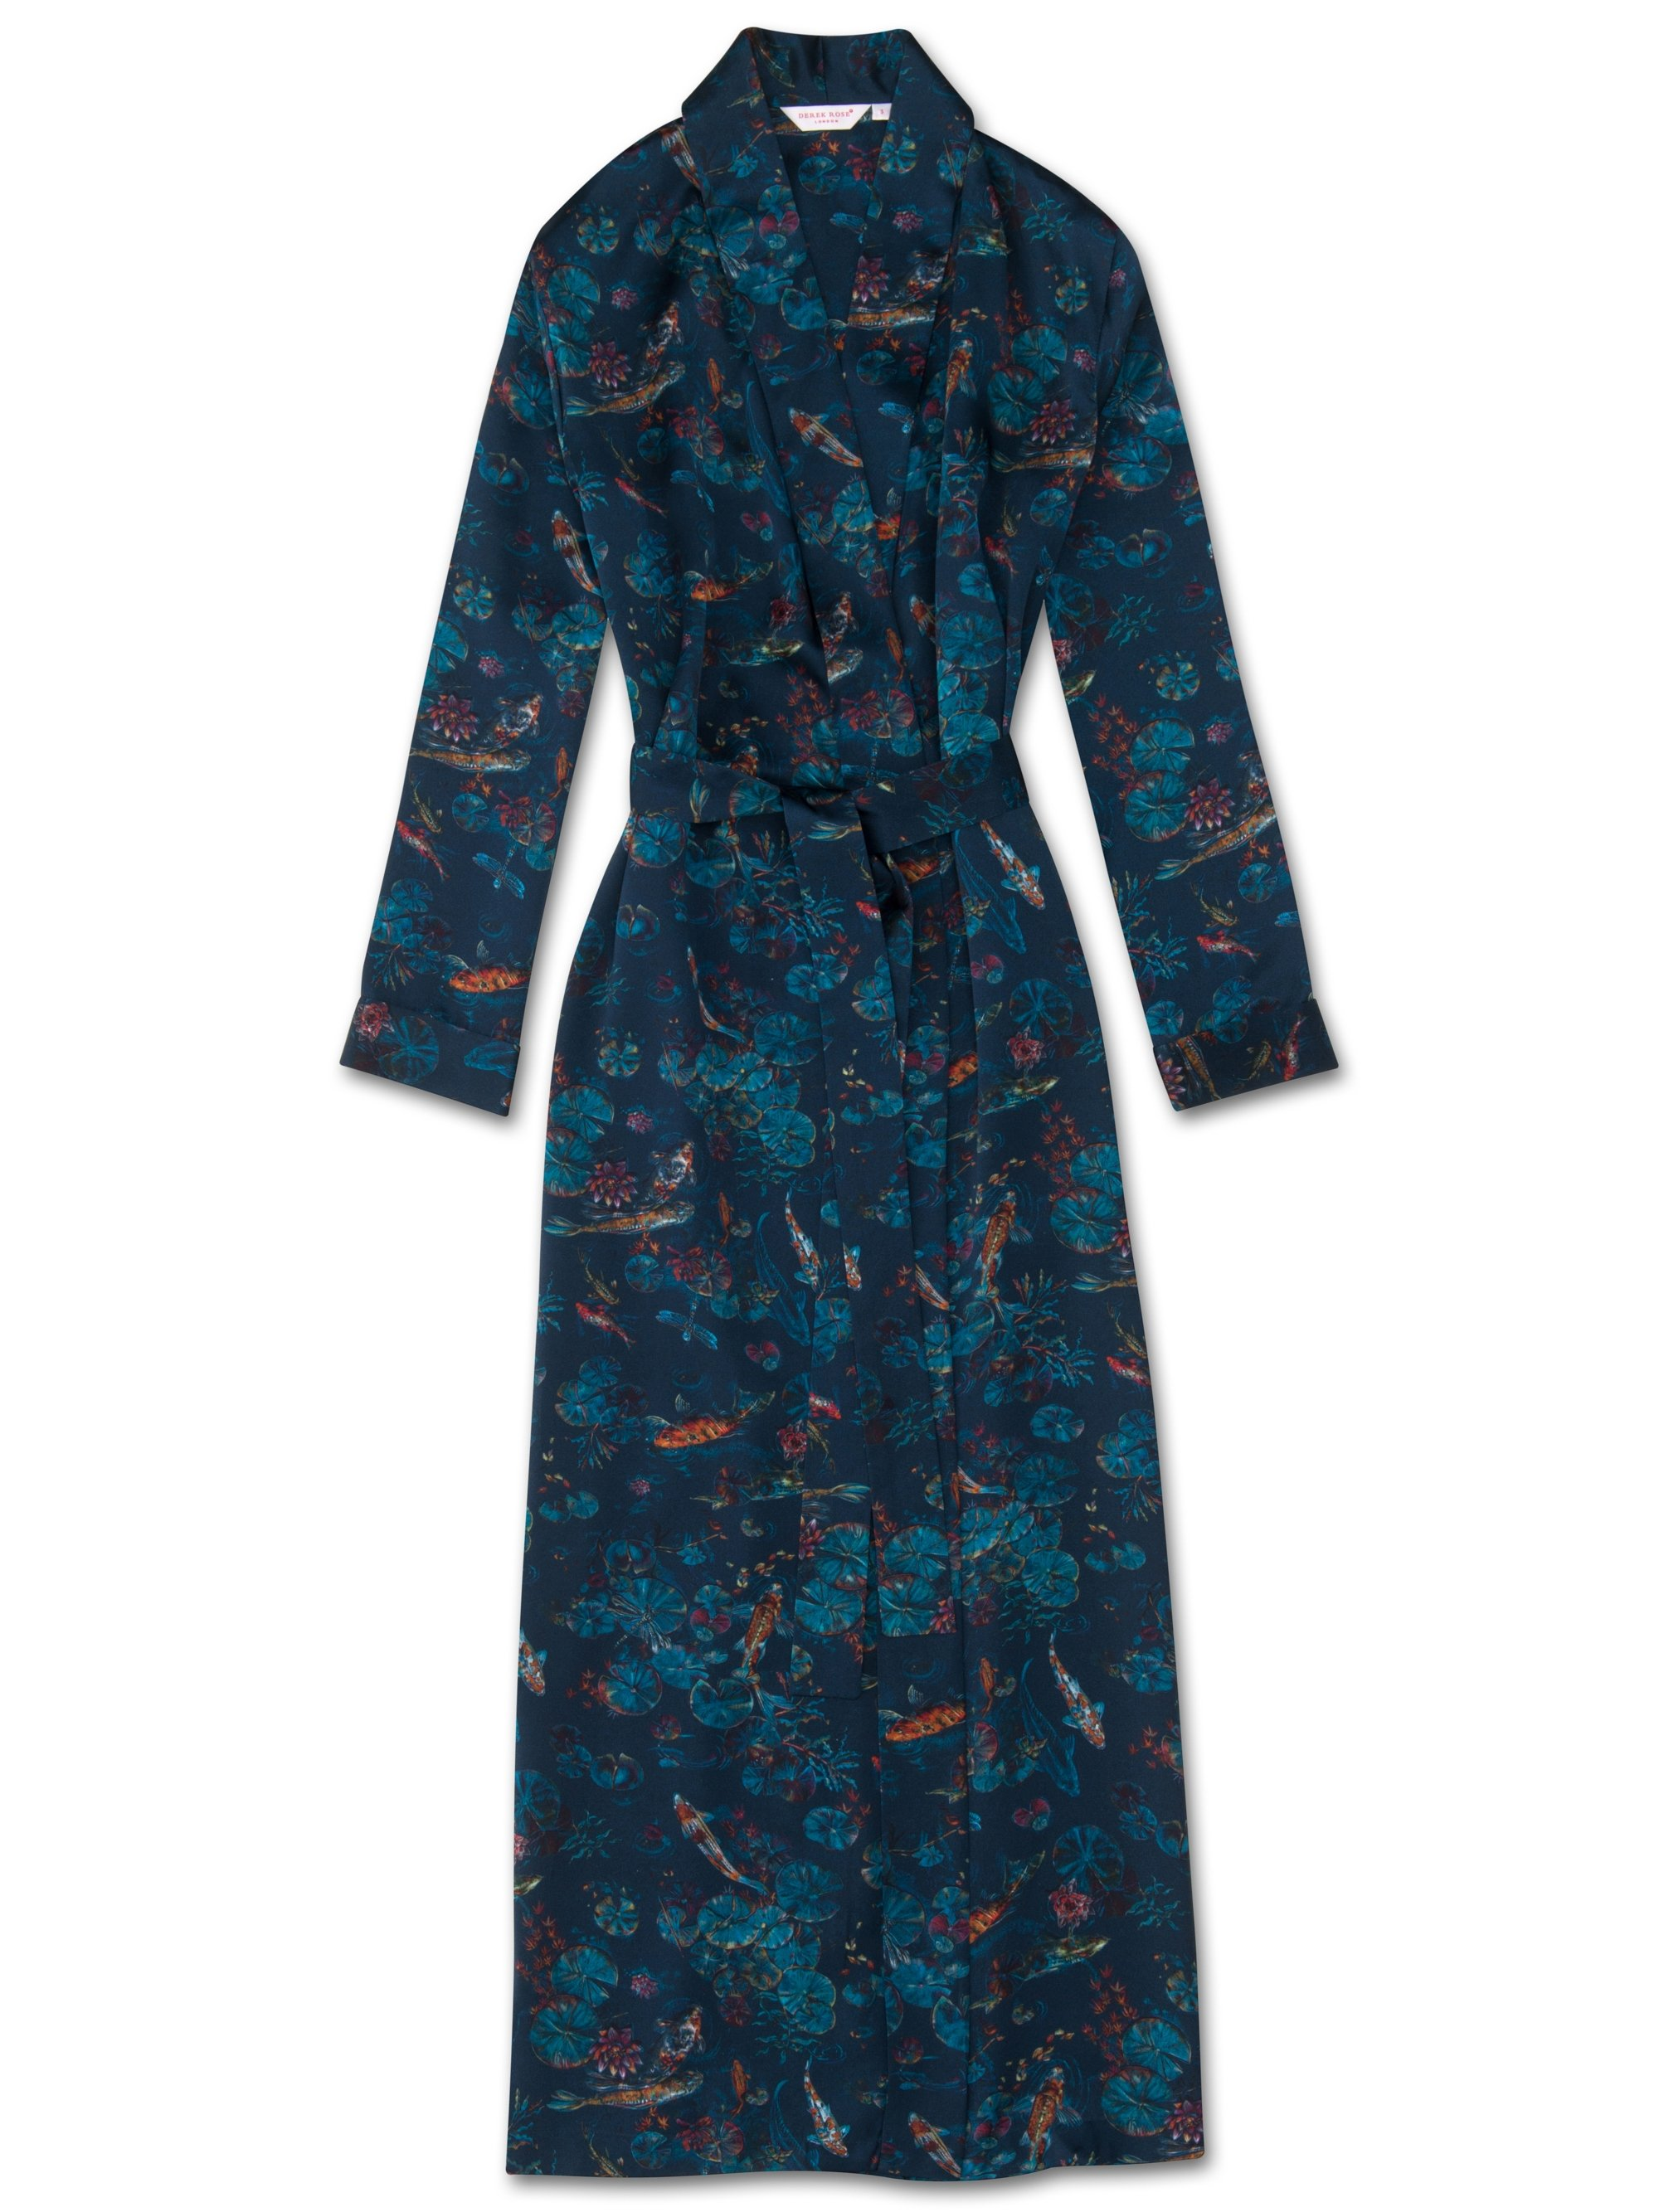 Women's Full Length Dressing Gown Brindisi 28 Pure Silk Satin Multi